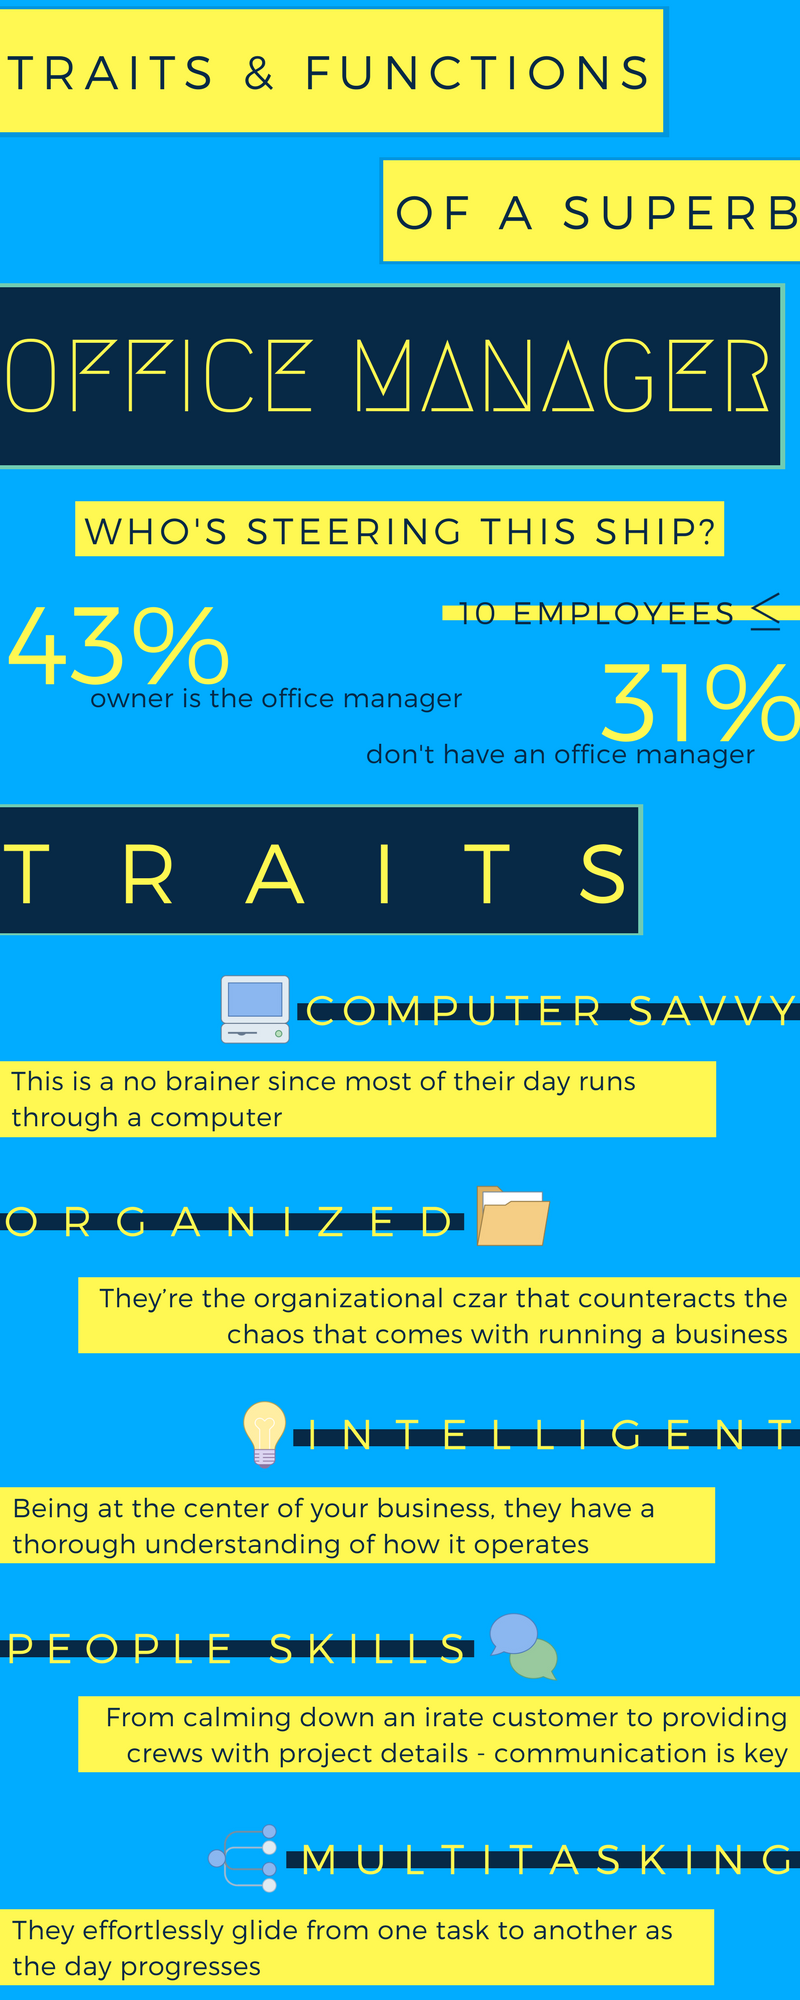 field service business- traits and functions of a superb office manager.png